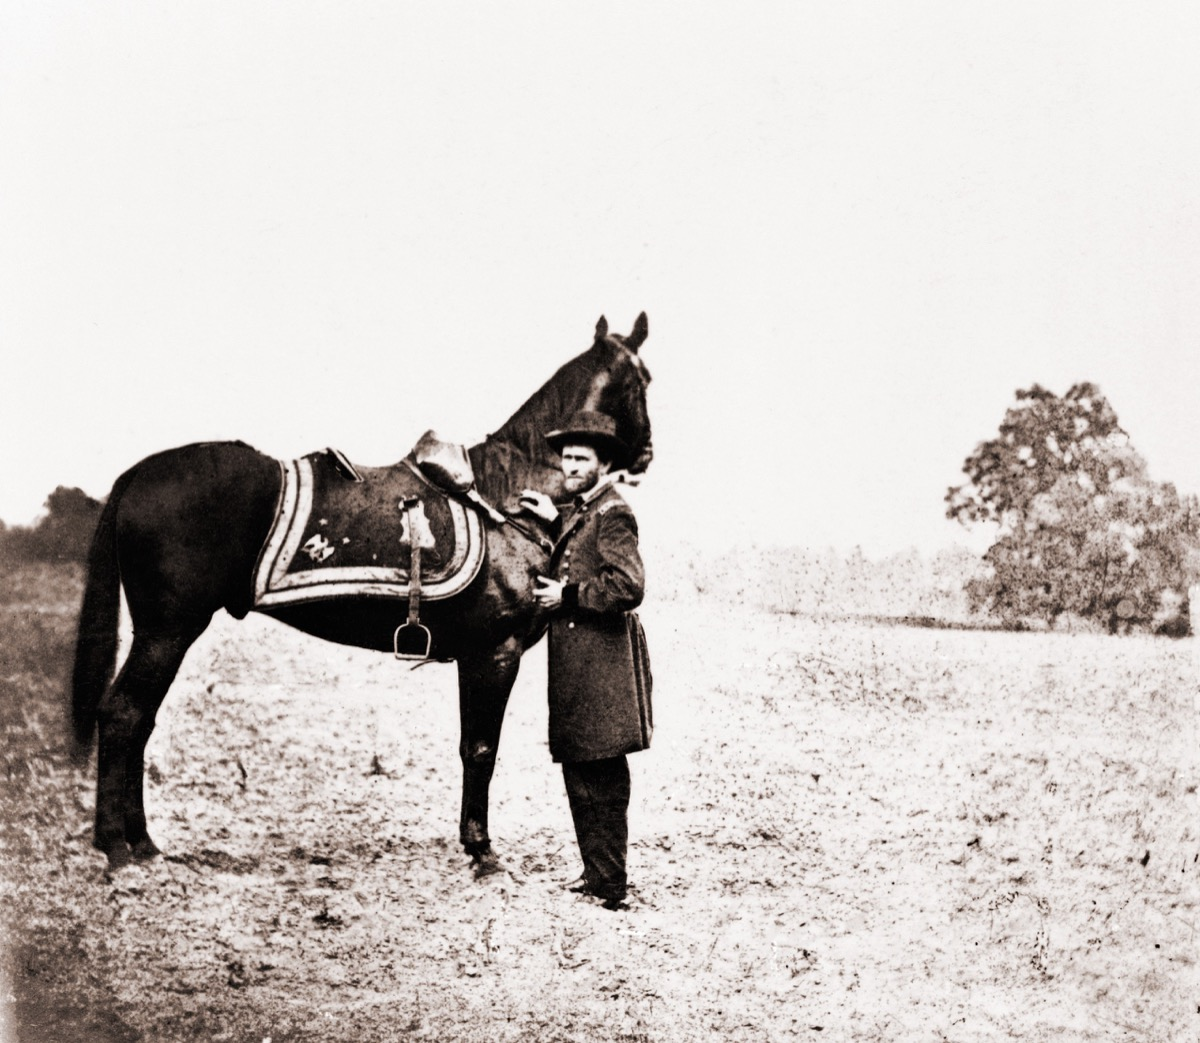 Ulysses S. Grant with horse